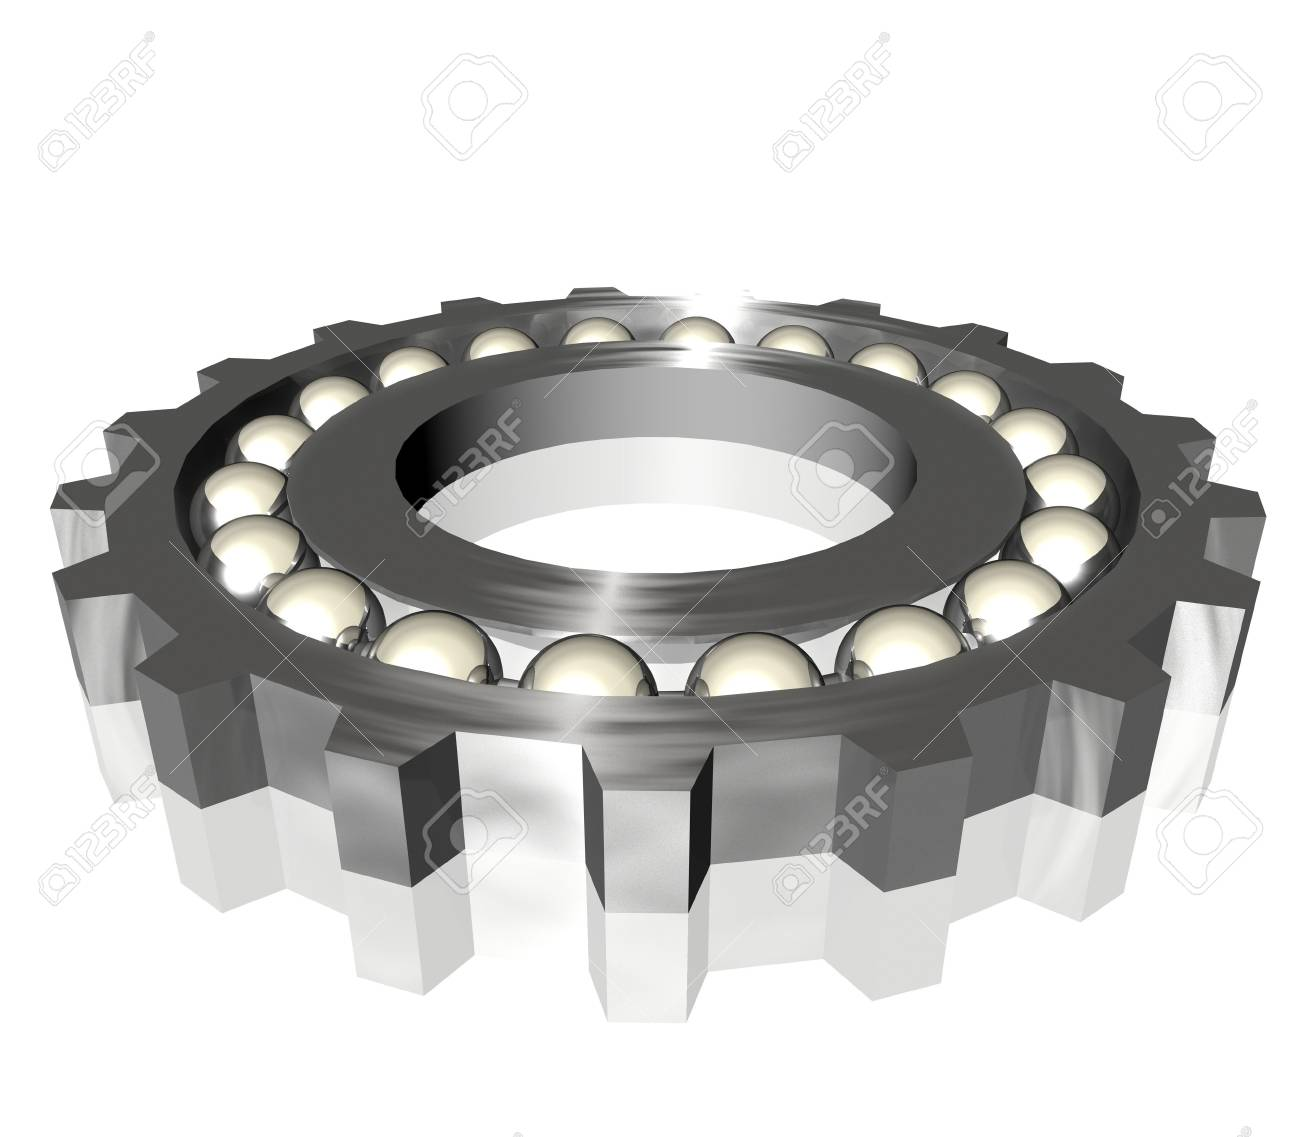 industrial gears Stock Photo - 3973222